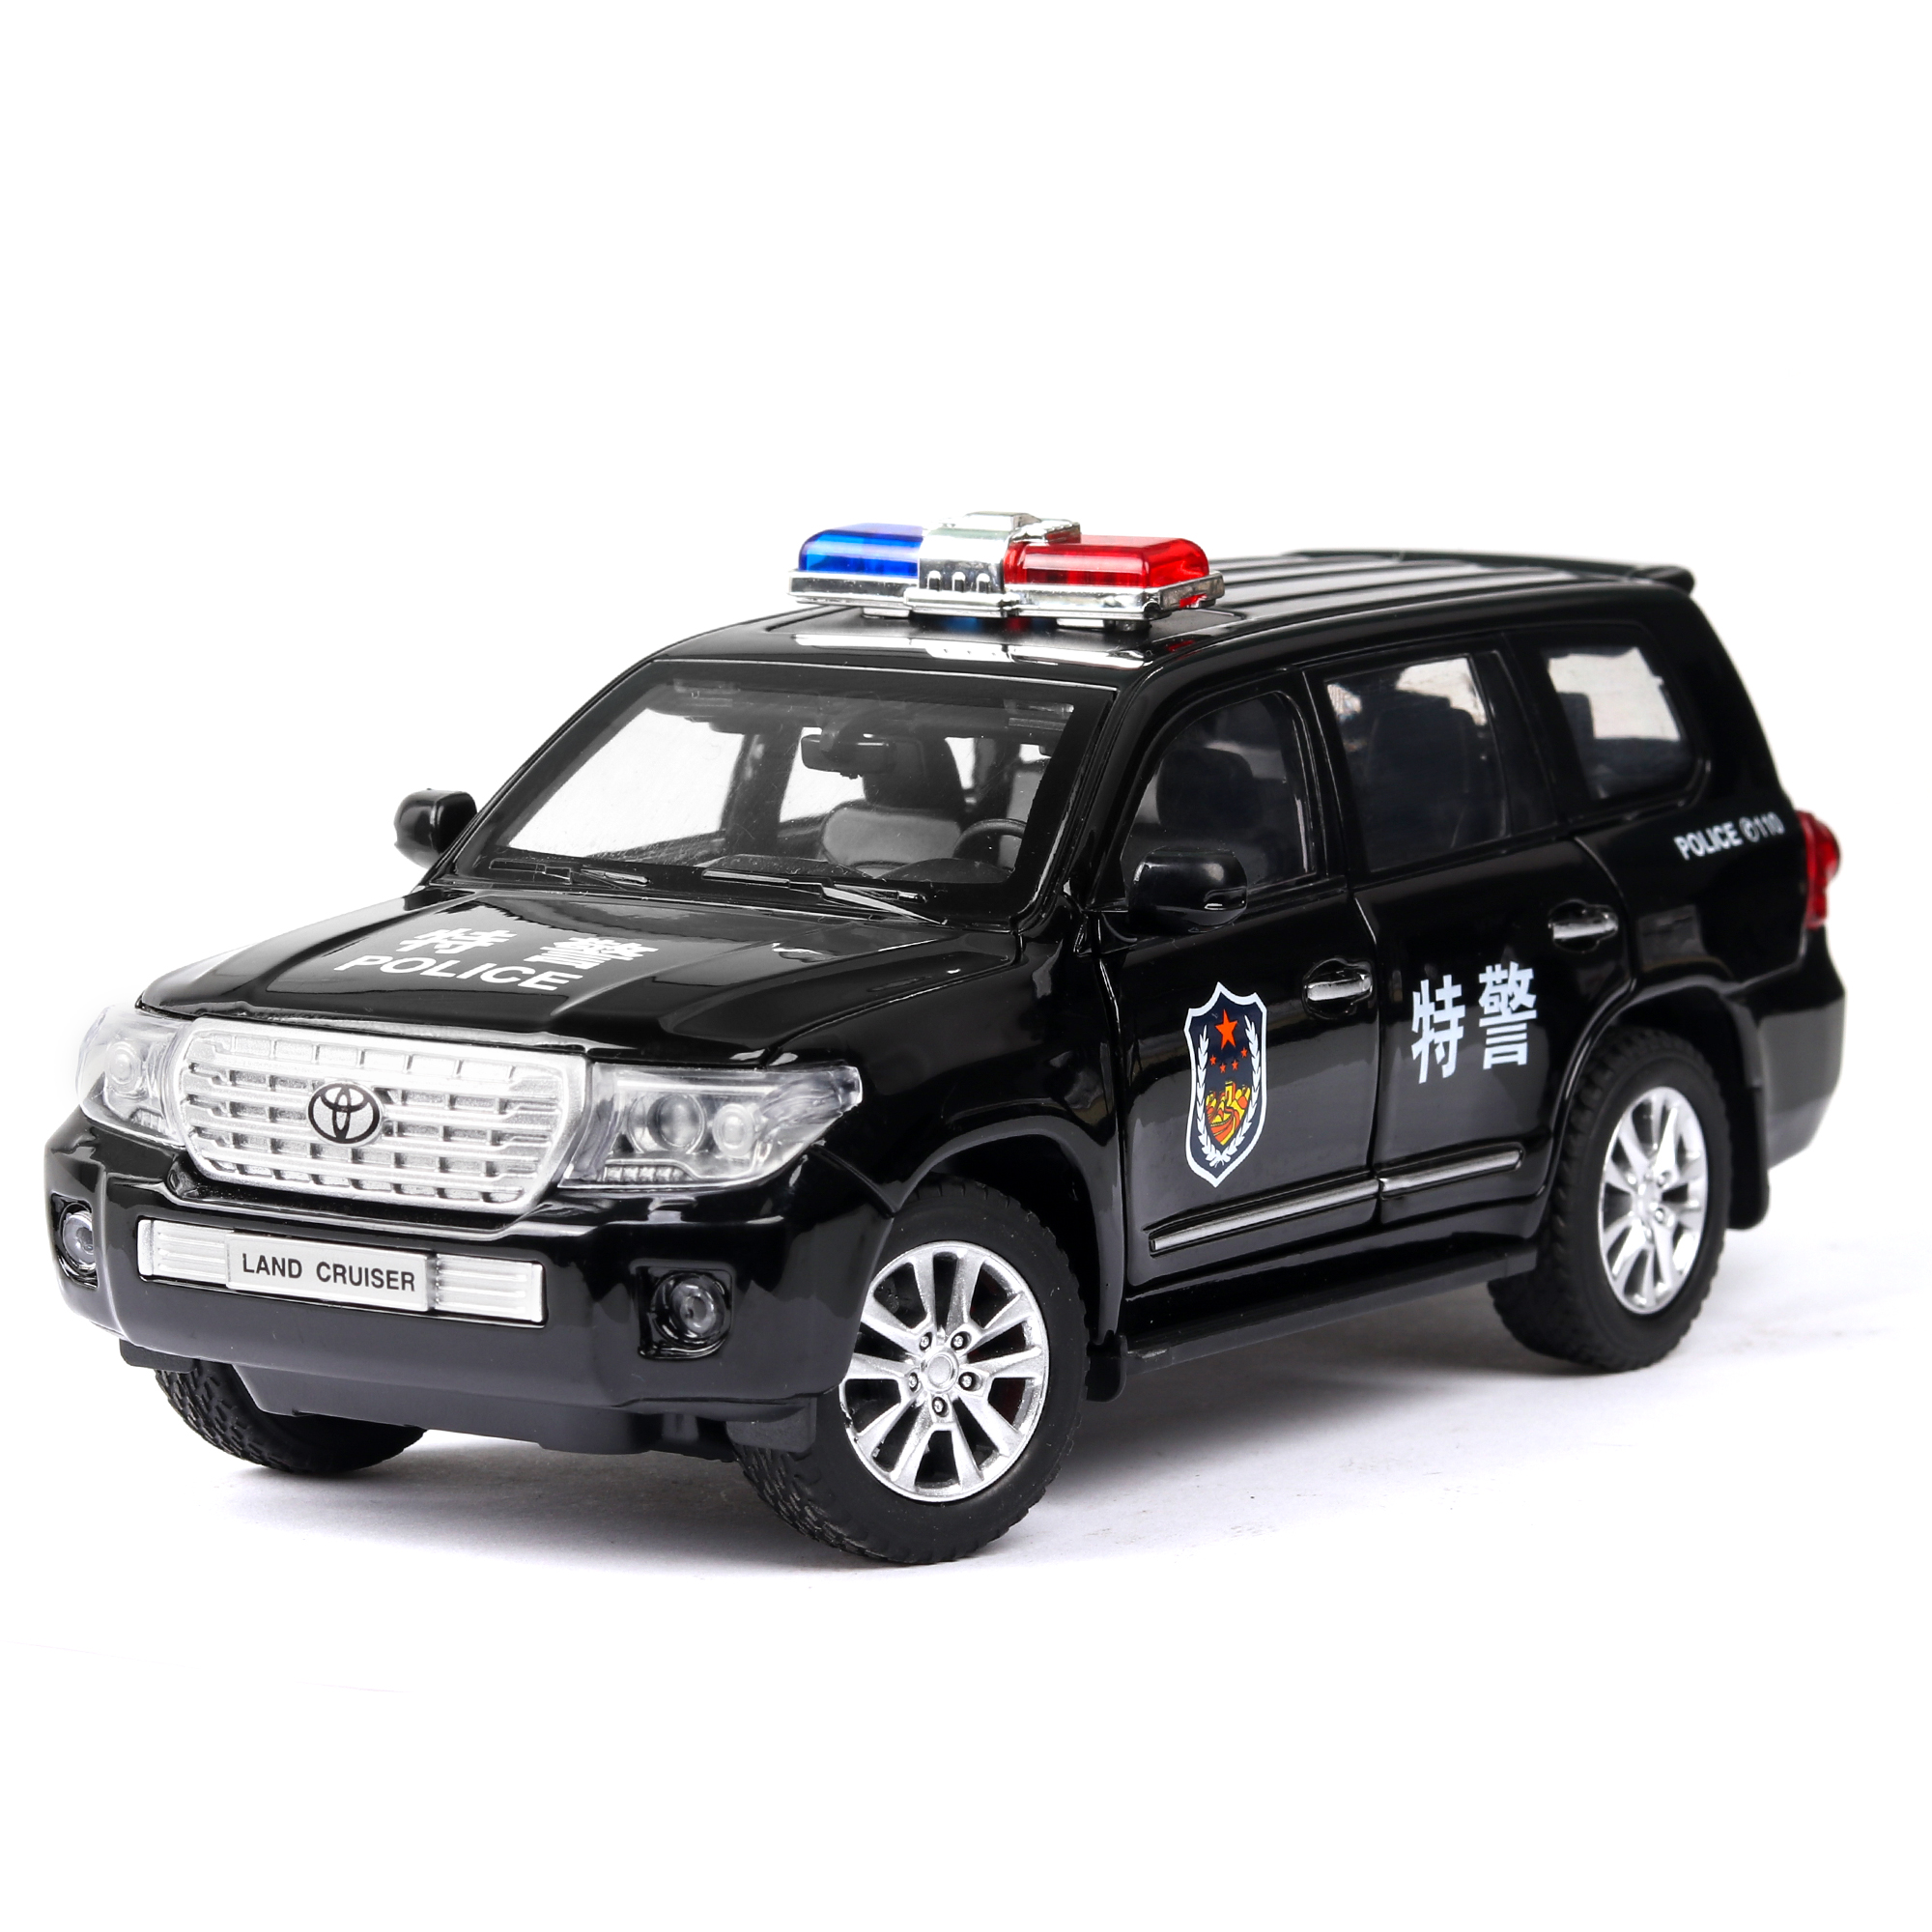 Diecast 1:24 High Simulation Toyota Land Cruiser Polices <font><b>Car</b></font> Alloy Vehicle <font><b>Car</b></font> <font><b>Model</b></font> Toy For Children Gifts <font><b>Wheels</b></font> Can Be Turned image